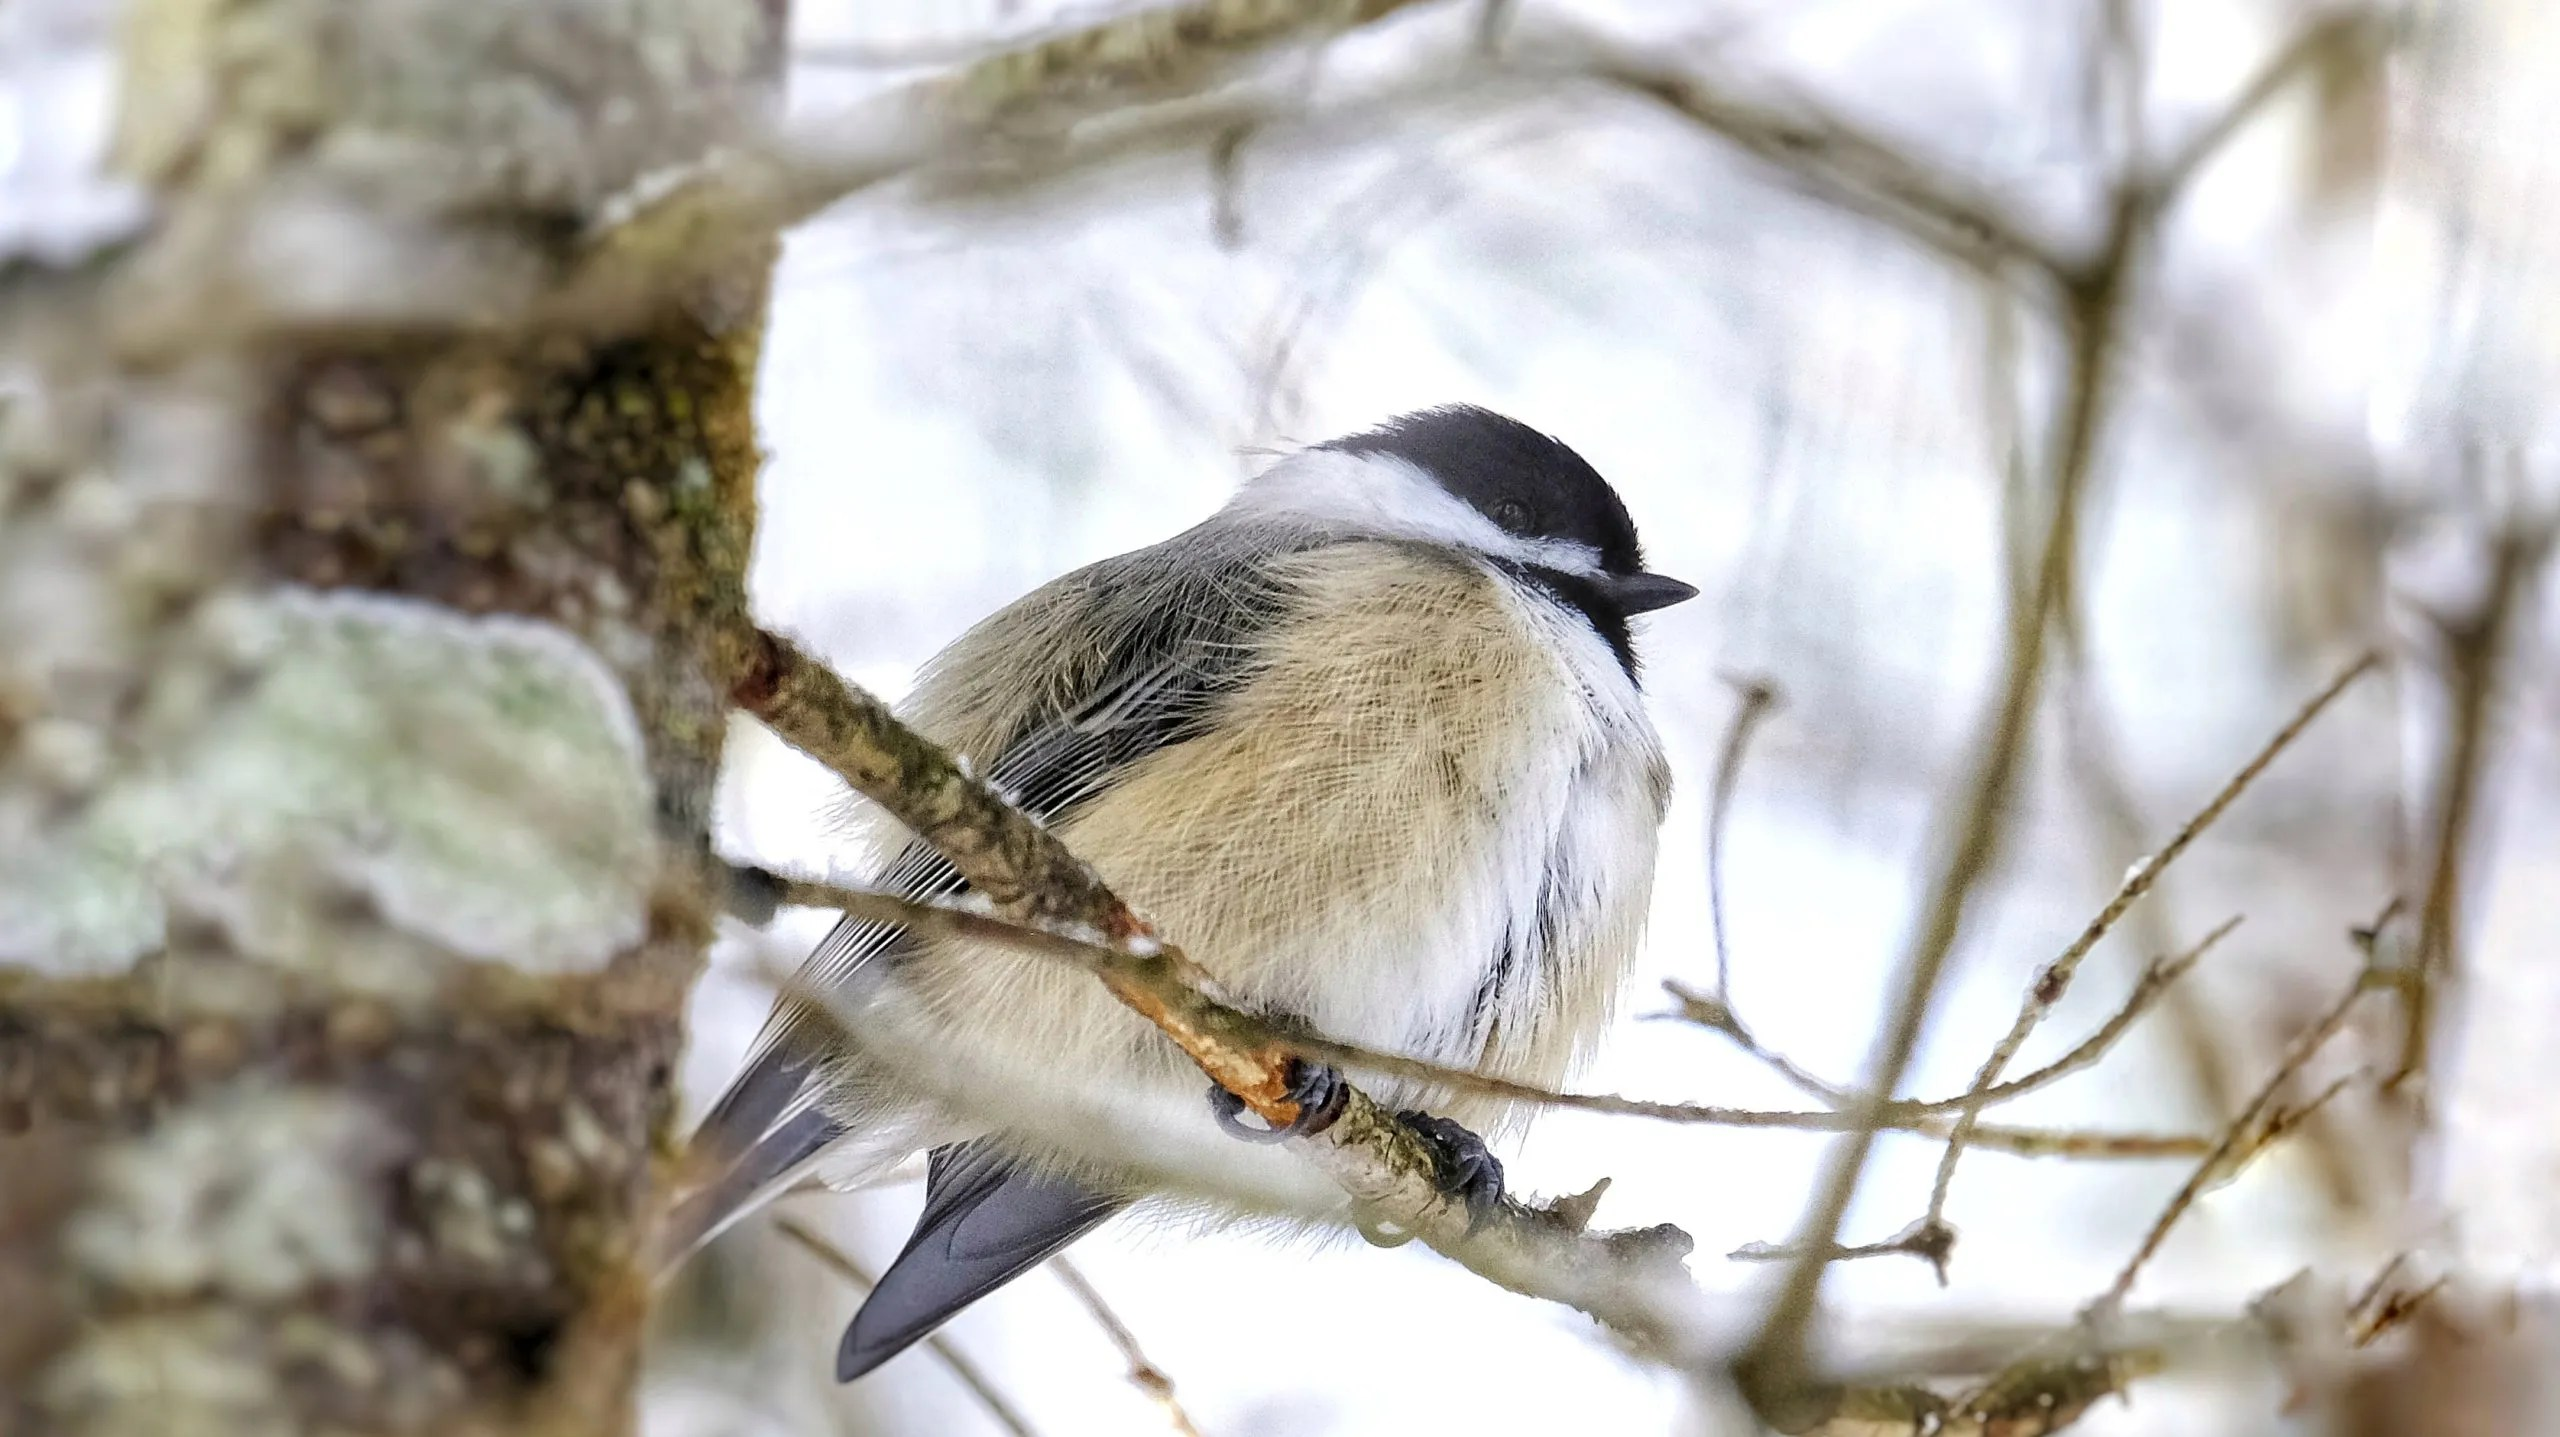 chickadee,bird,winter,forest,nature,trees,branches